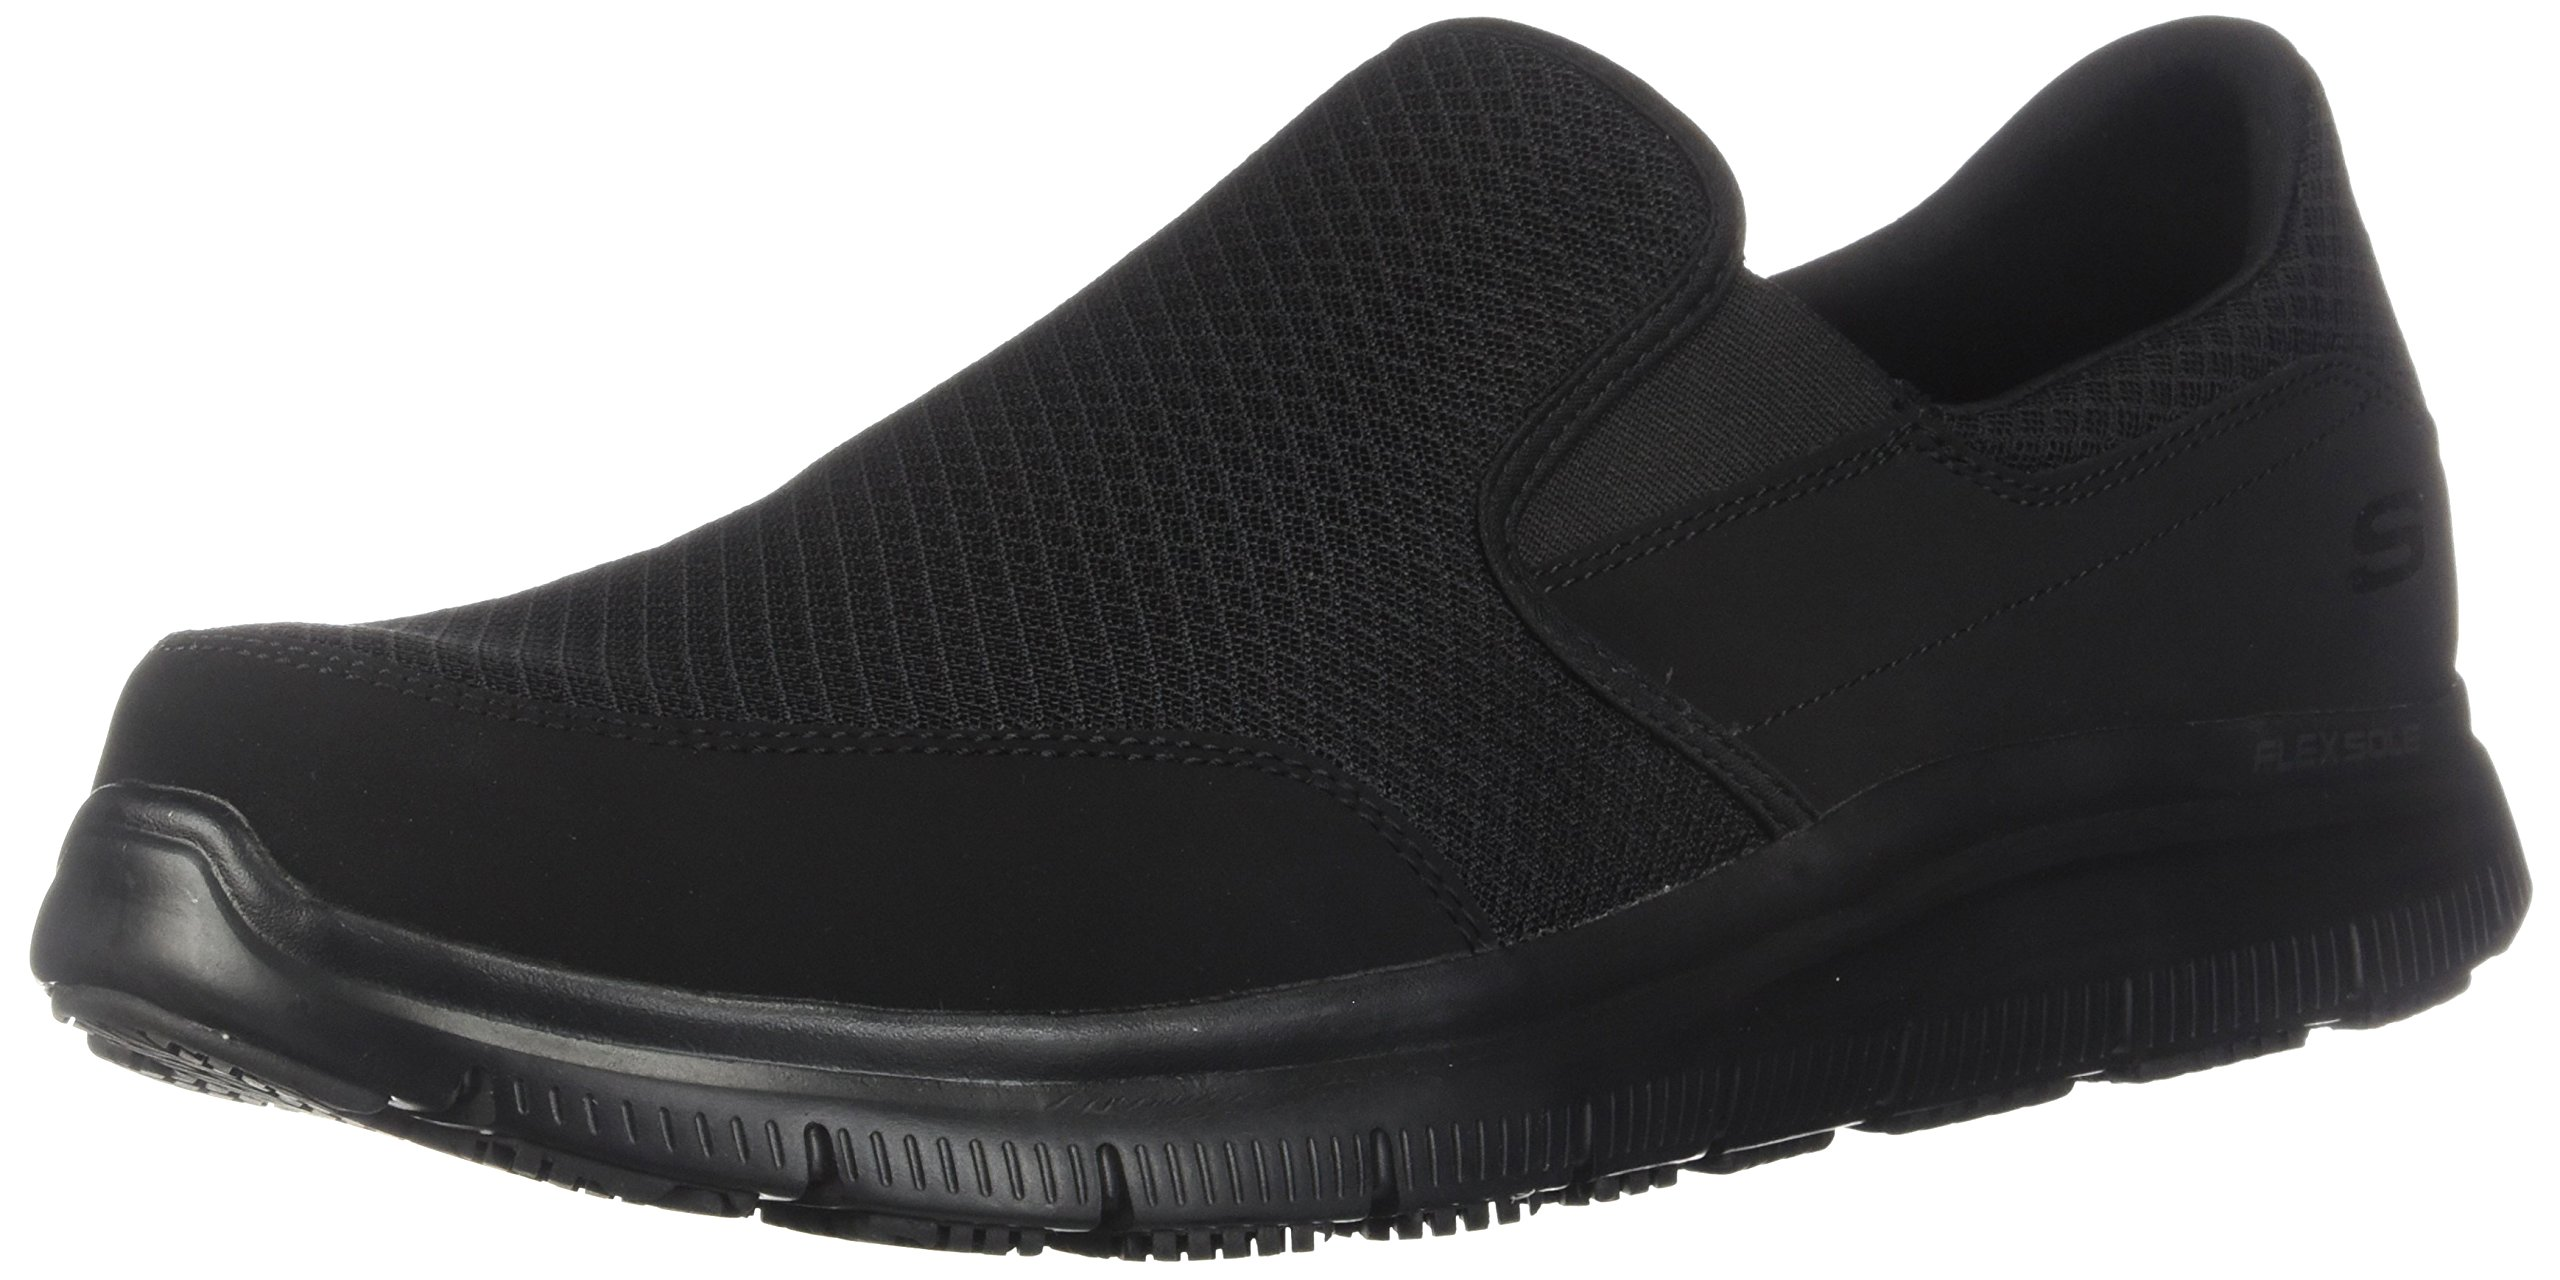 Skechers Men's Black Mesh Flex Advantage Slip Resistant Mcallen Slip On - 16 D(M) US